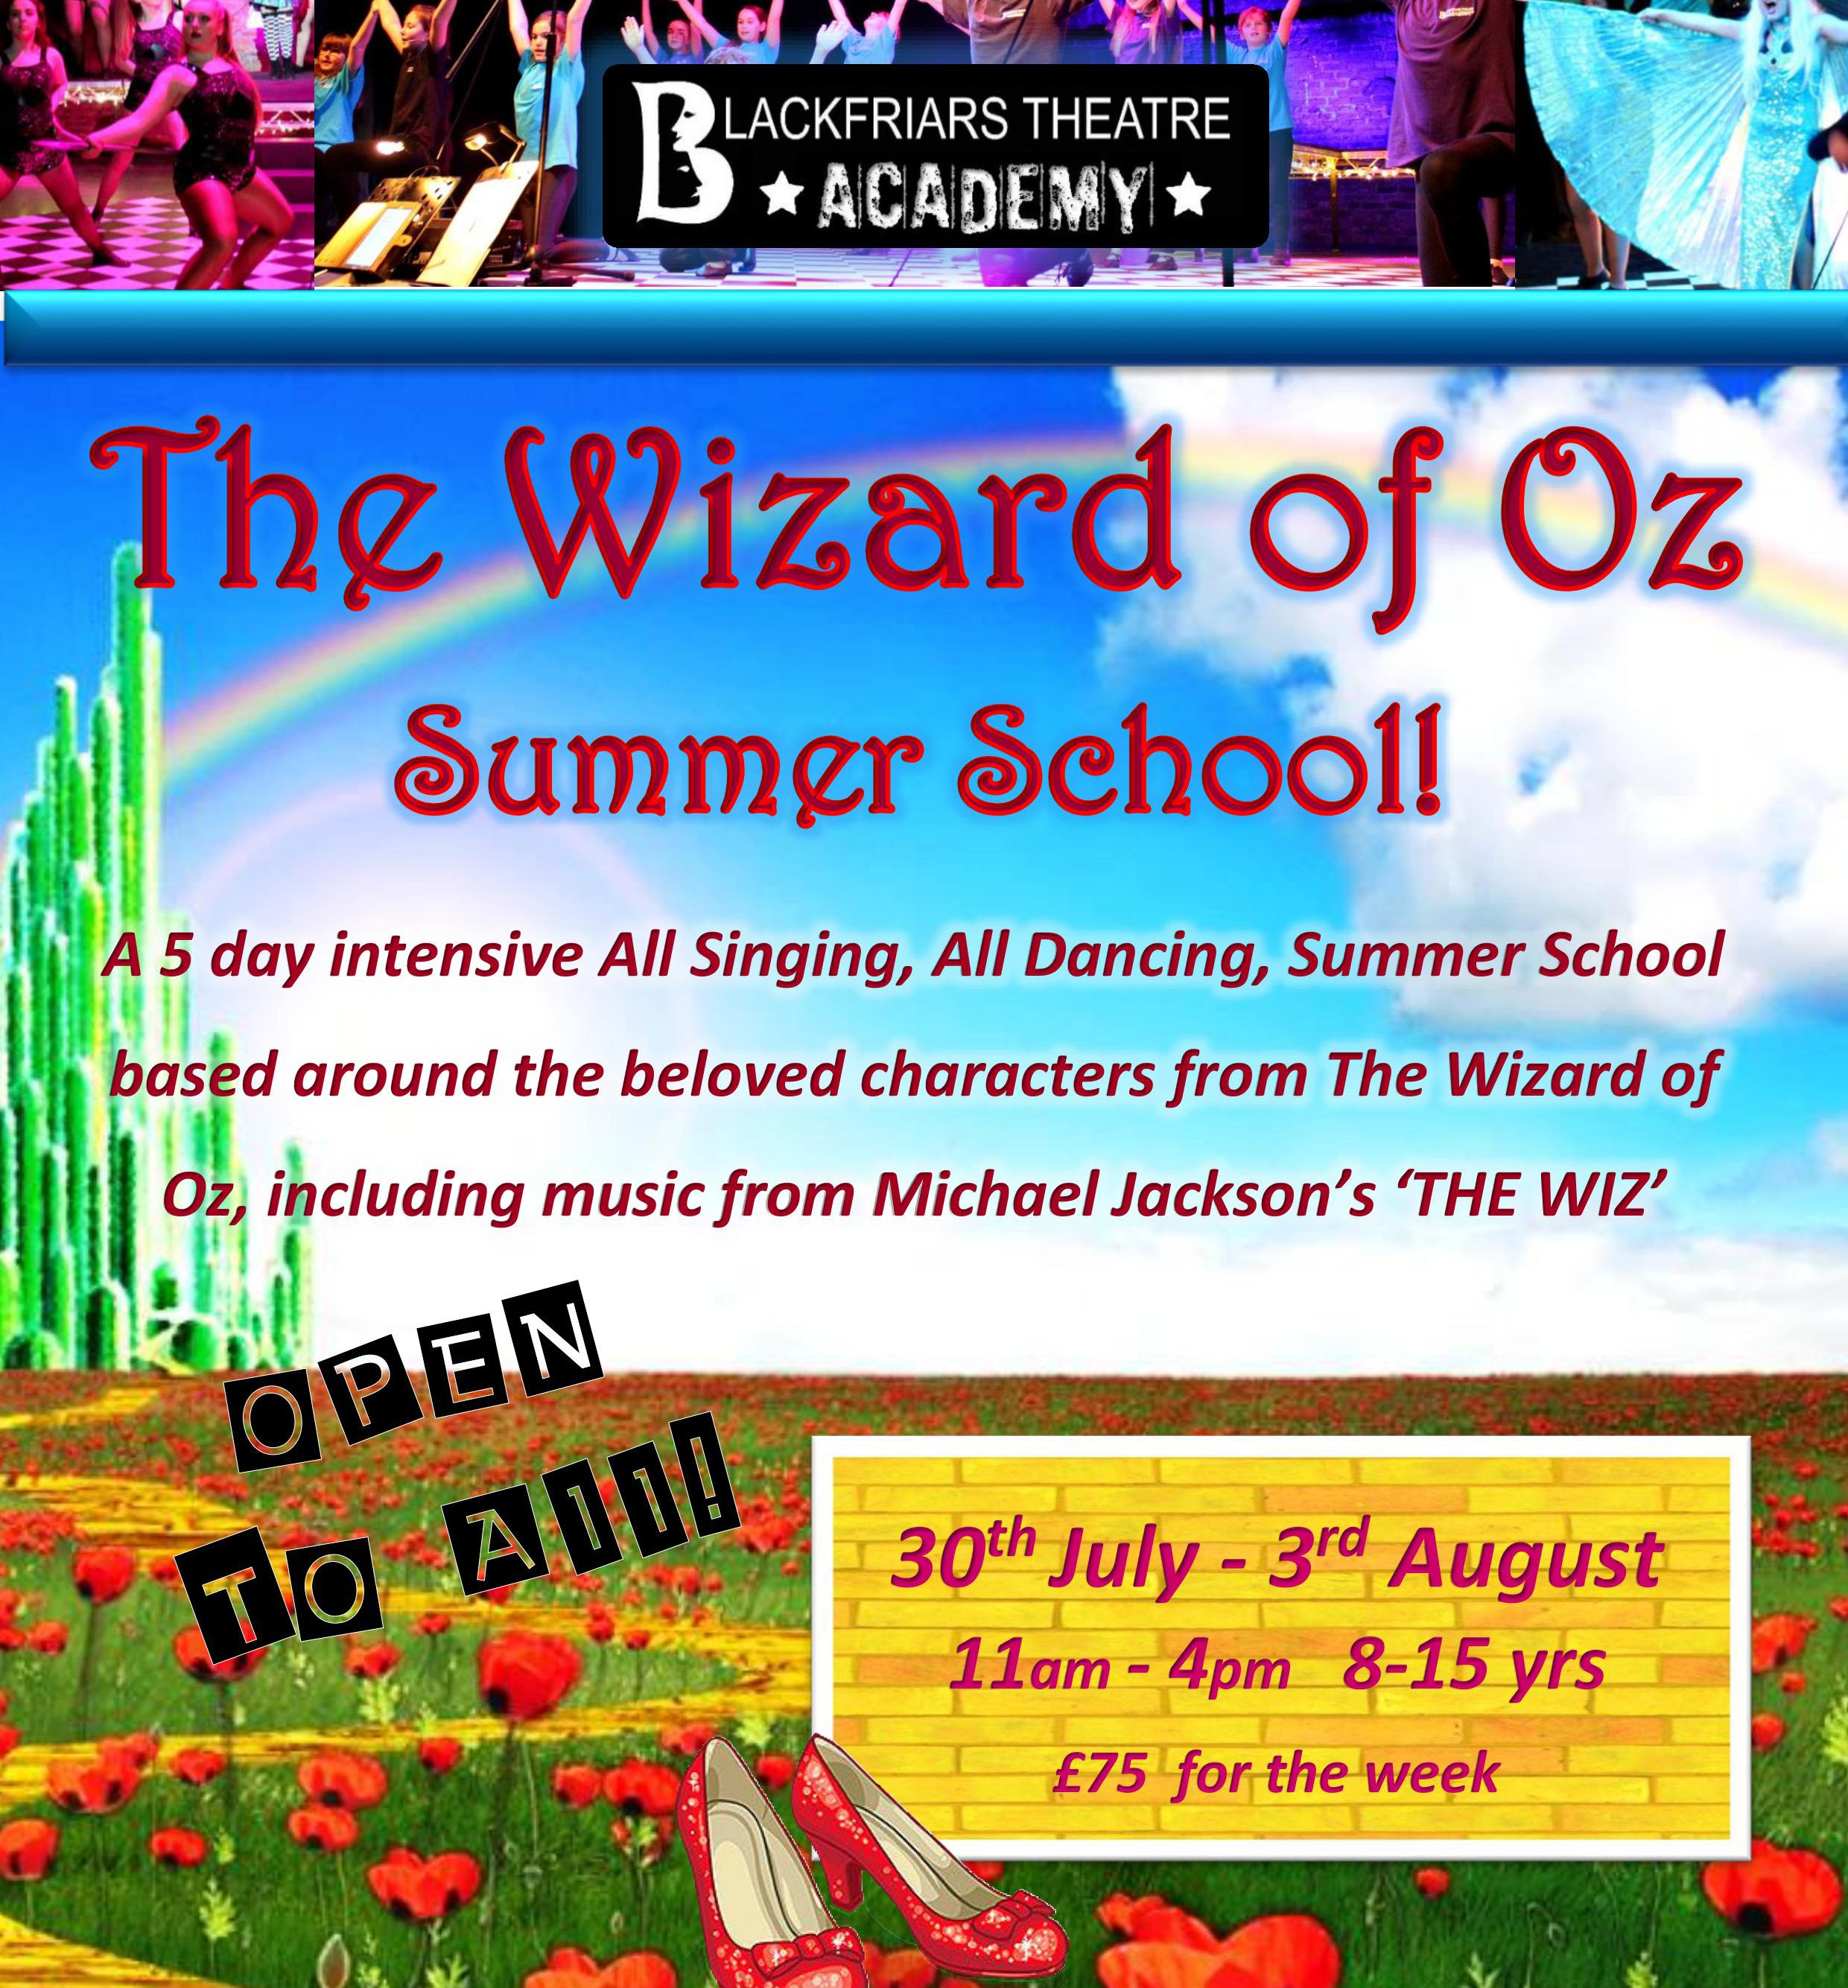 Blackfriars Theatre Academy - Summer School - FINAL PLACES LEFT